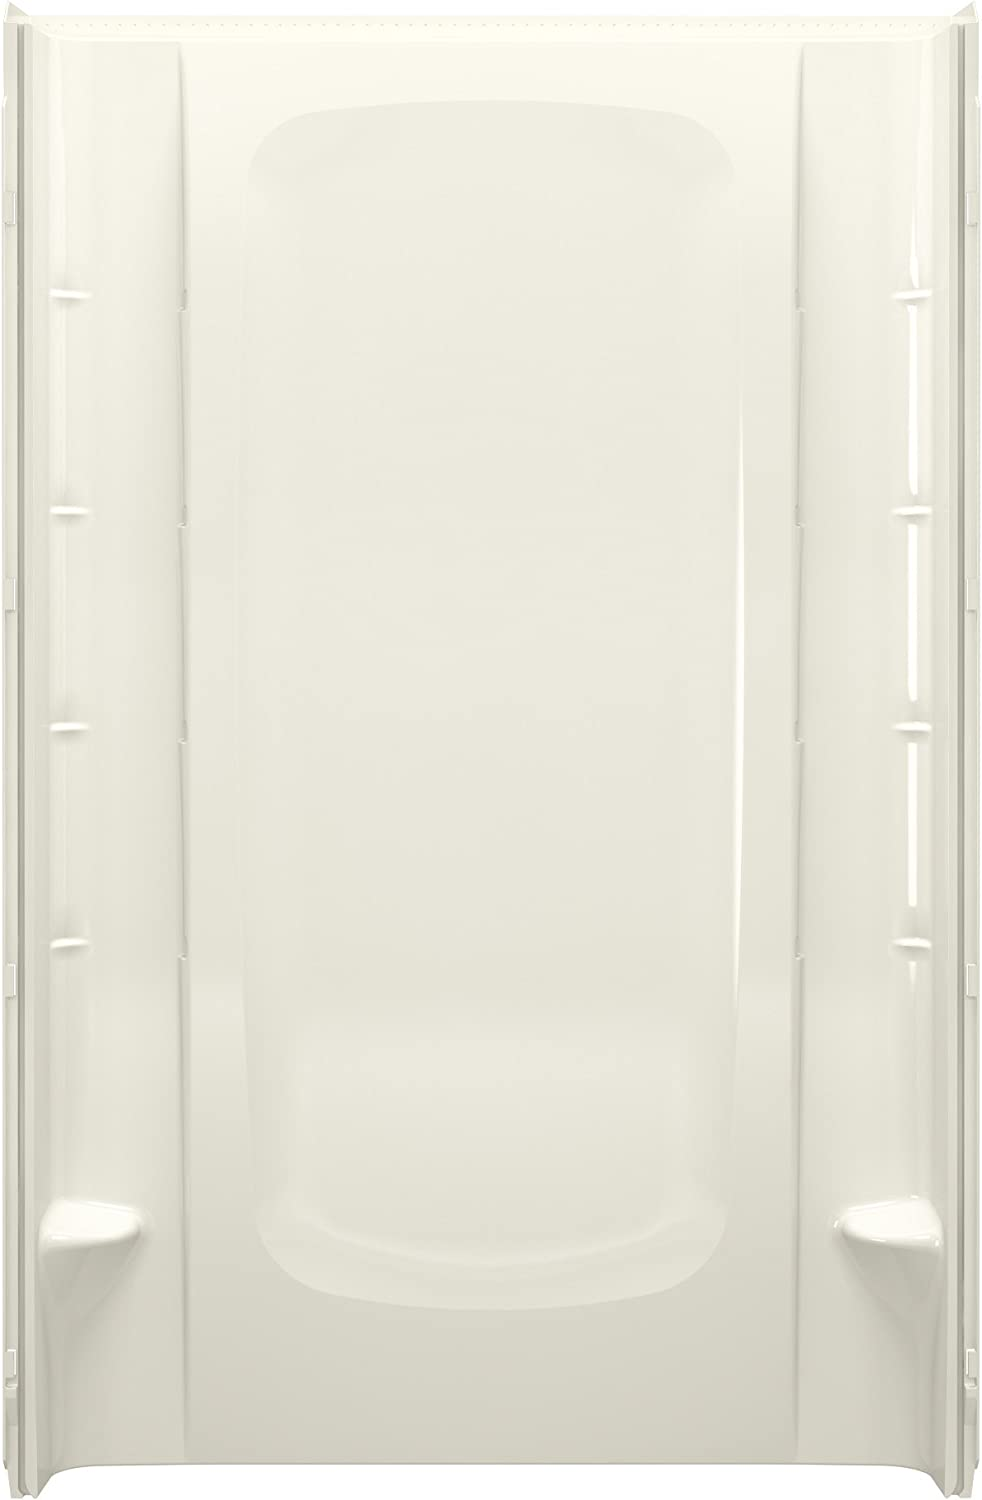 H Back Wall STERLING W x 72-1//2 In Biscuit, a KOHLER Company 72322100-96 Store+ 48 In